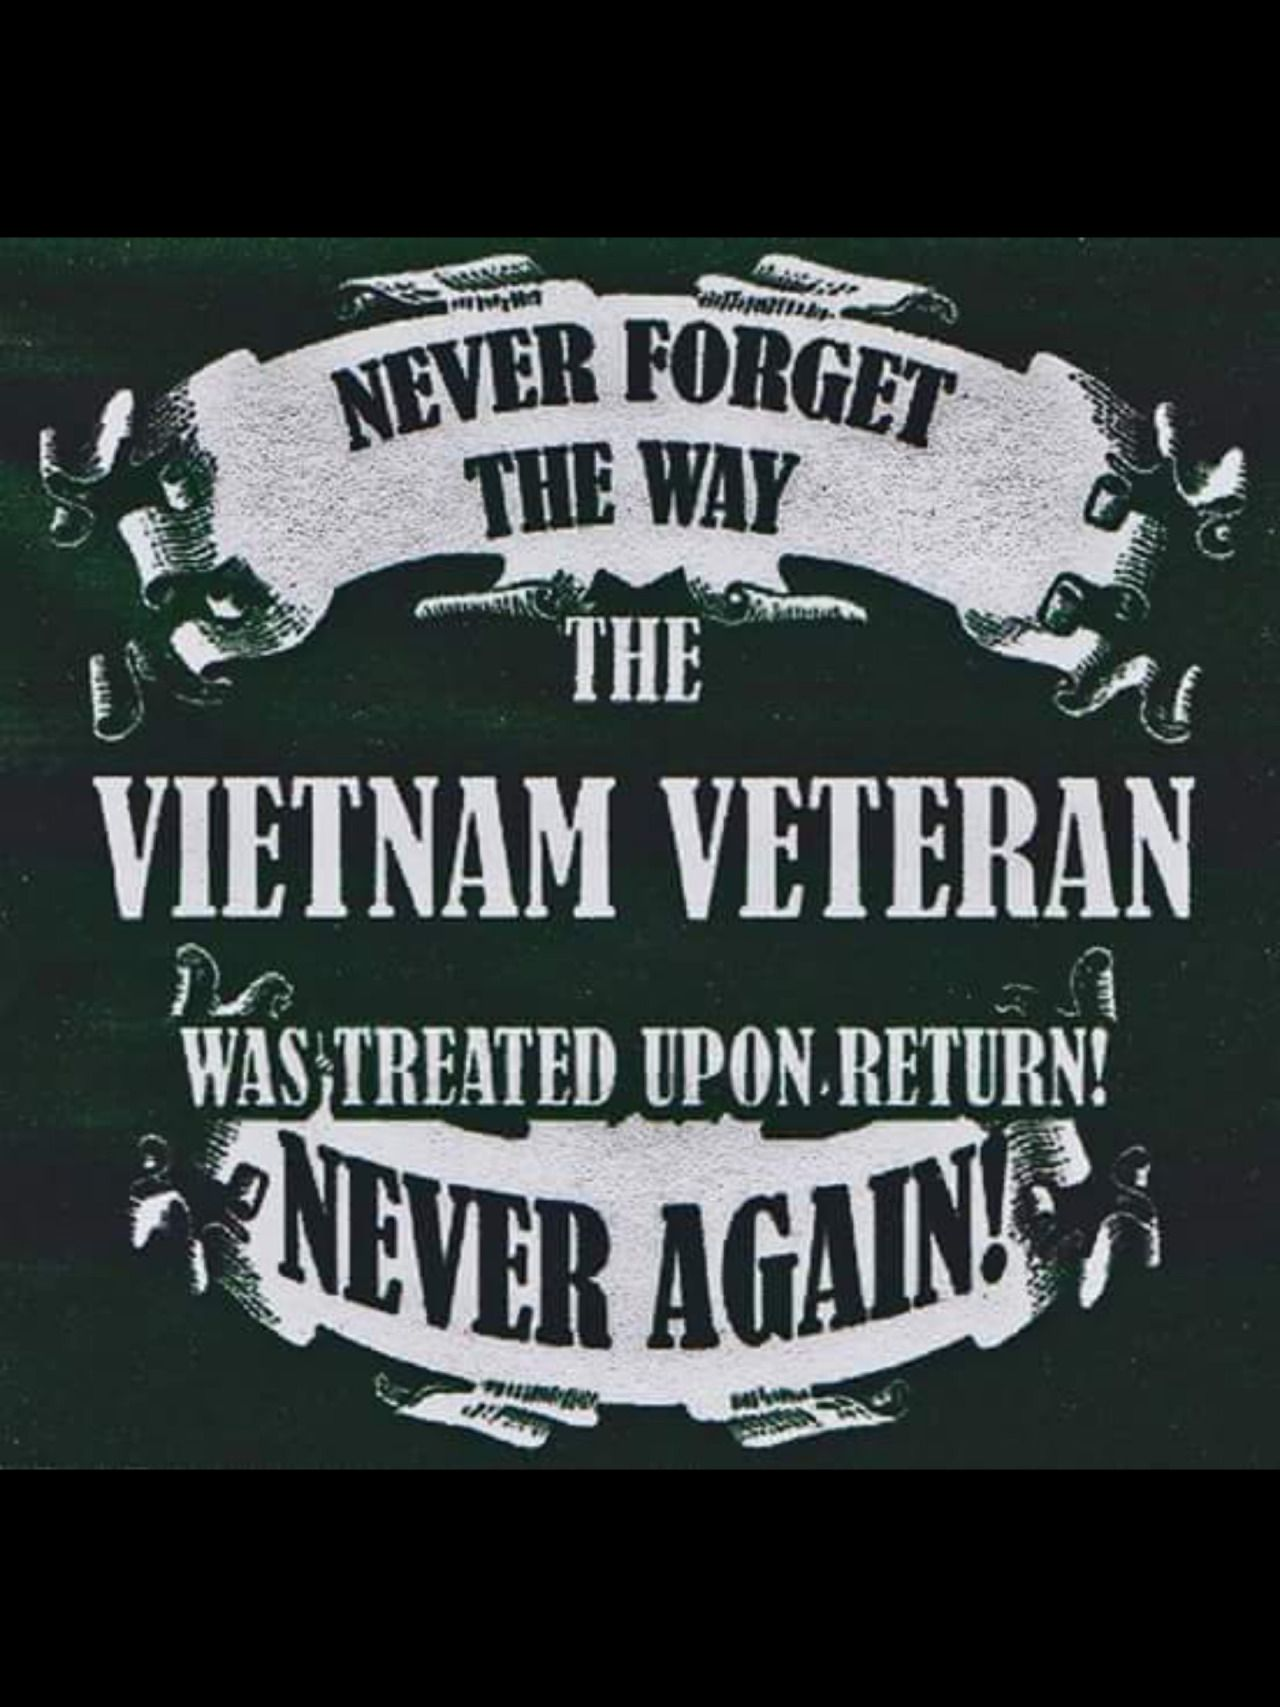 Never forget the way the vietnam veteran was treated upon return never again